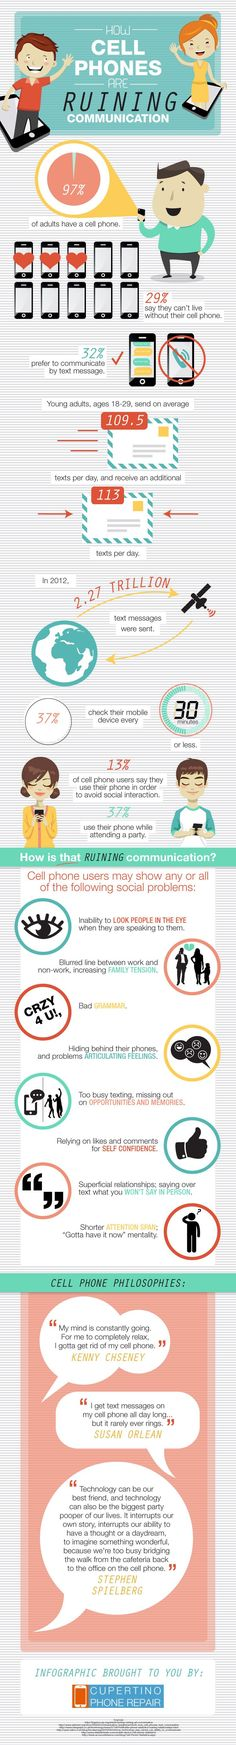 How Cell Phones are Ruining Communication